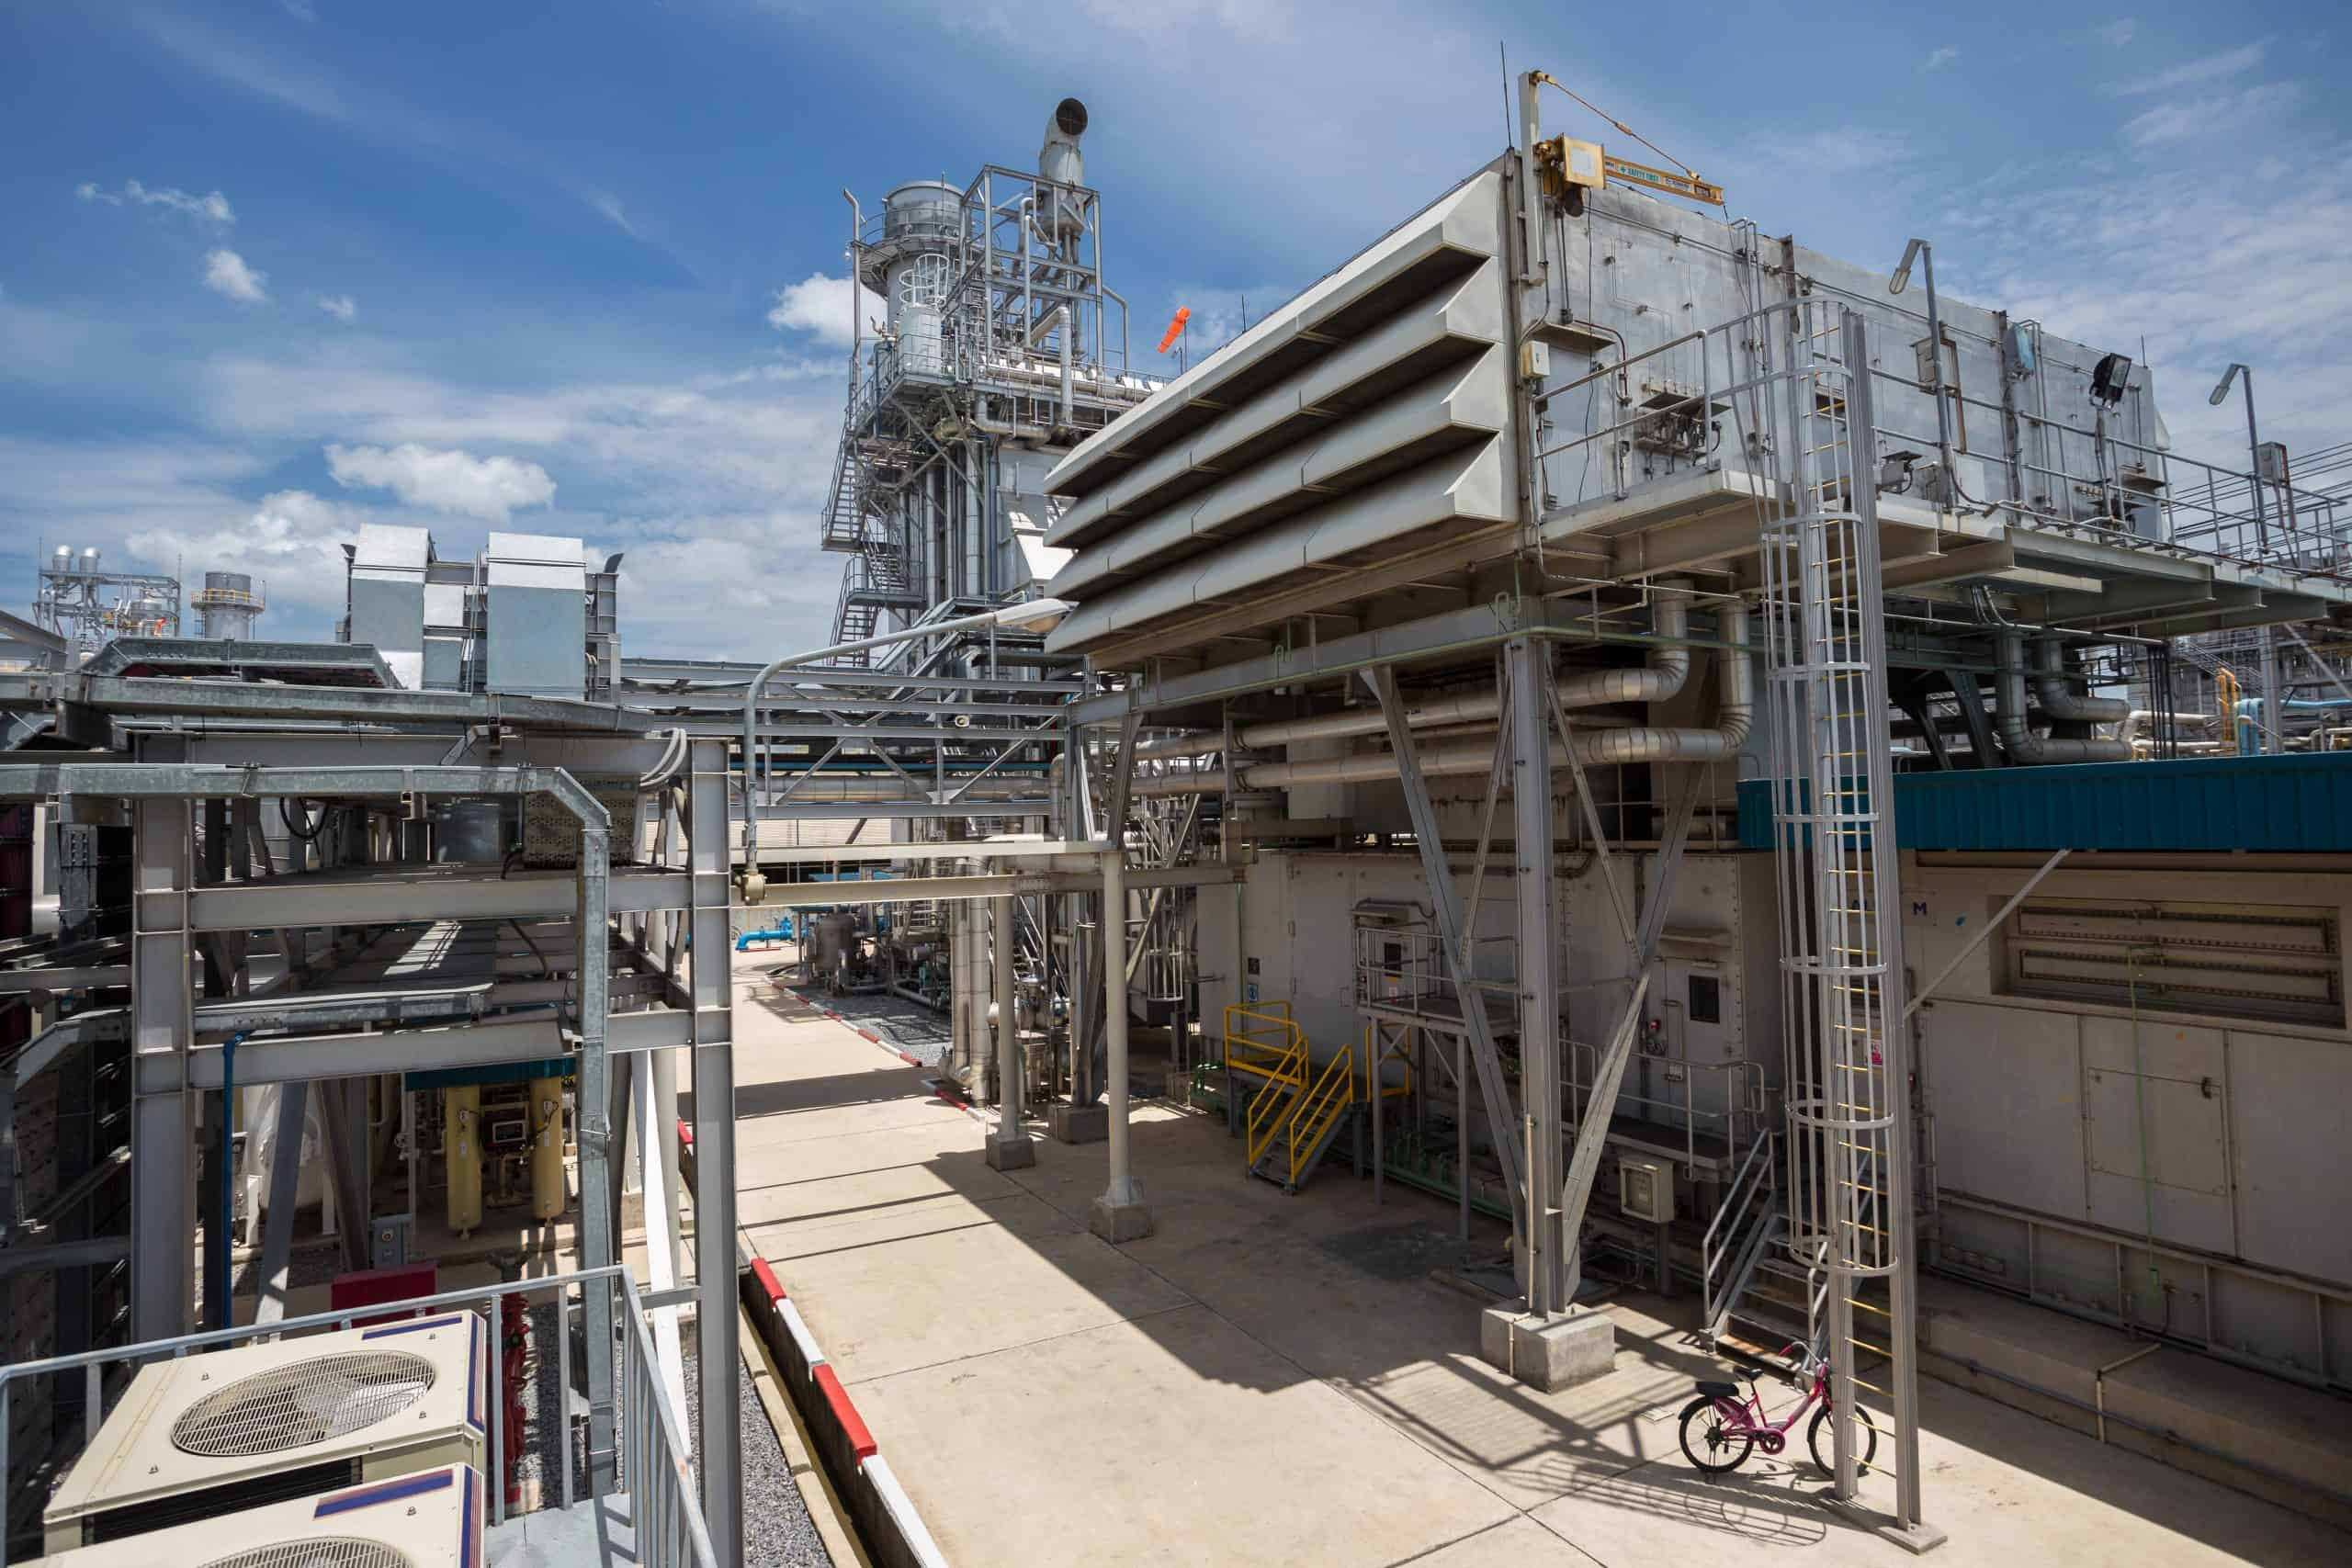 Transformers for Valmadrera Cogeneration plant